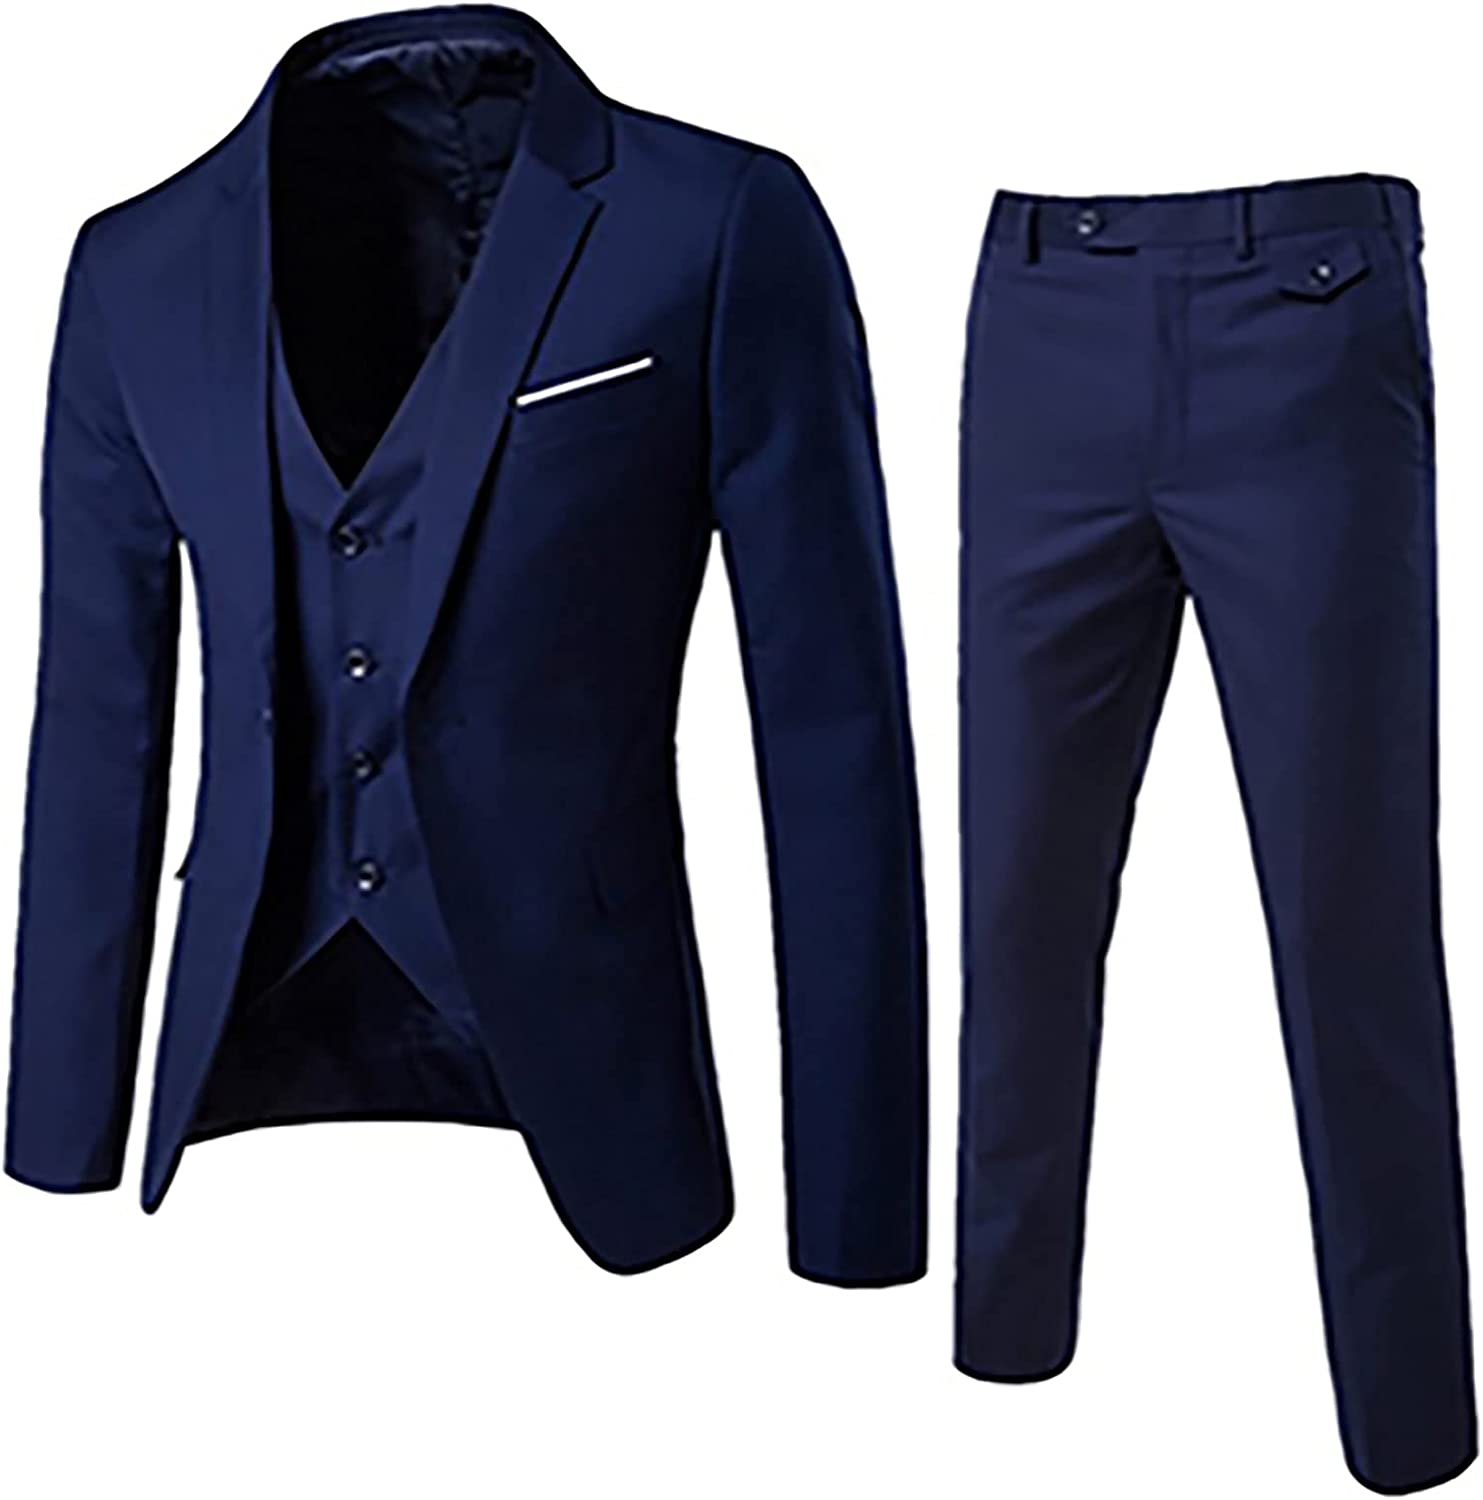 Zainafacai Mens 3 Piece Suits One Button Formal Fashion Slim Fit Solid Color Wedding Tuxedo Shawl Collar Formal Casual Suits